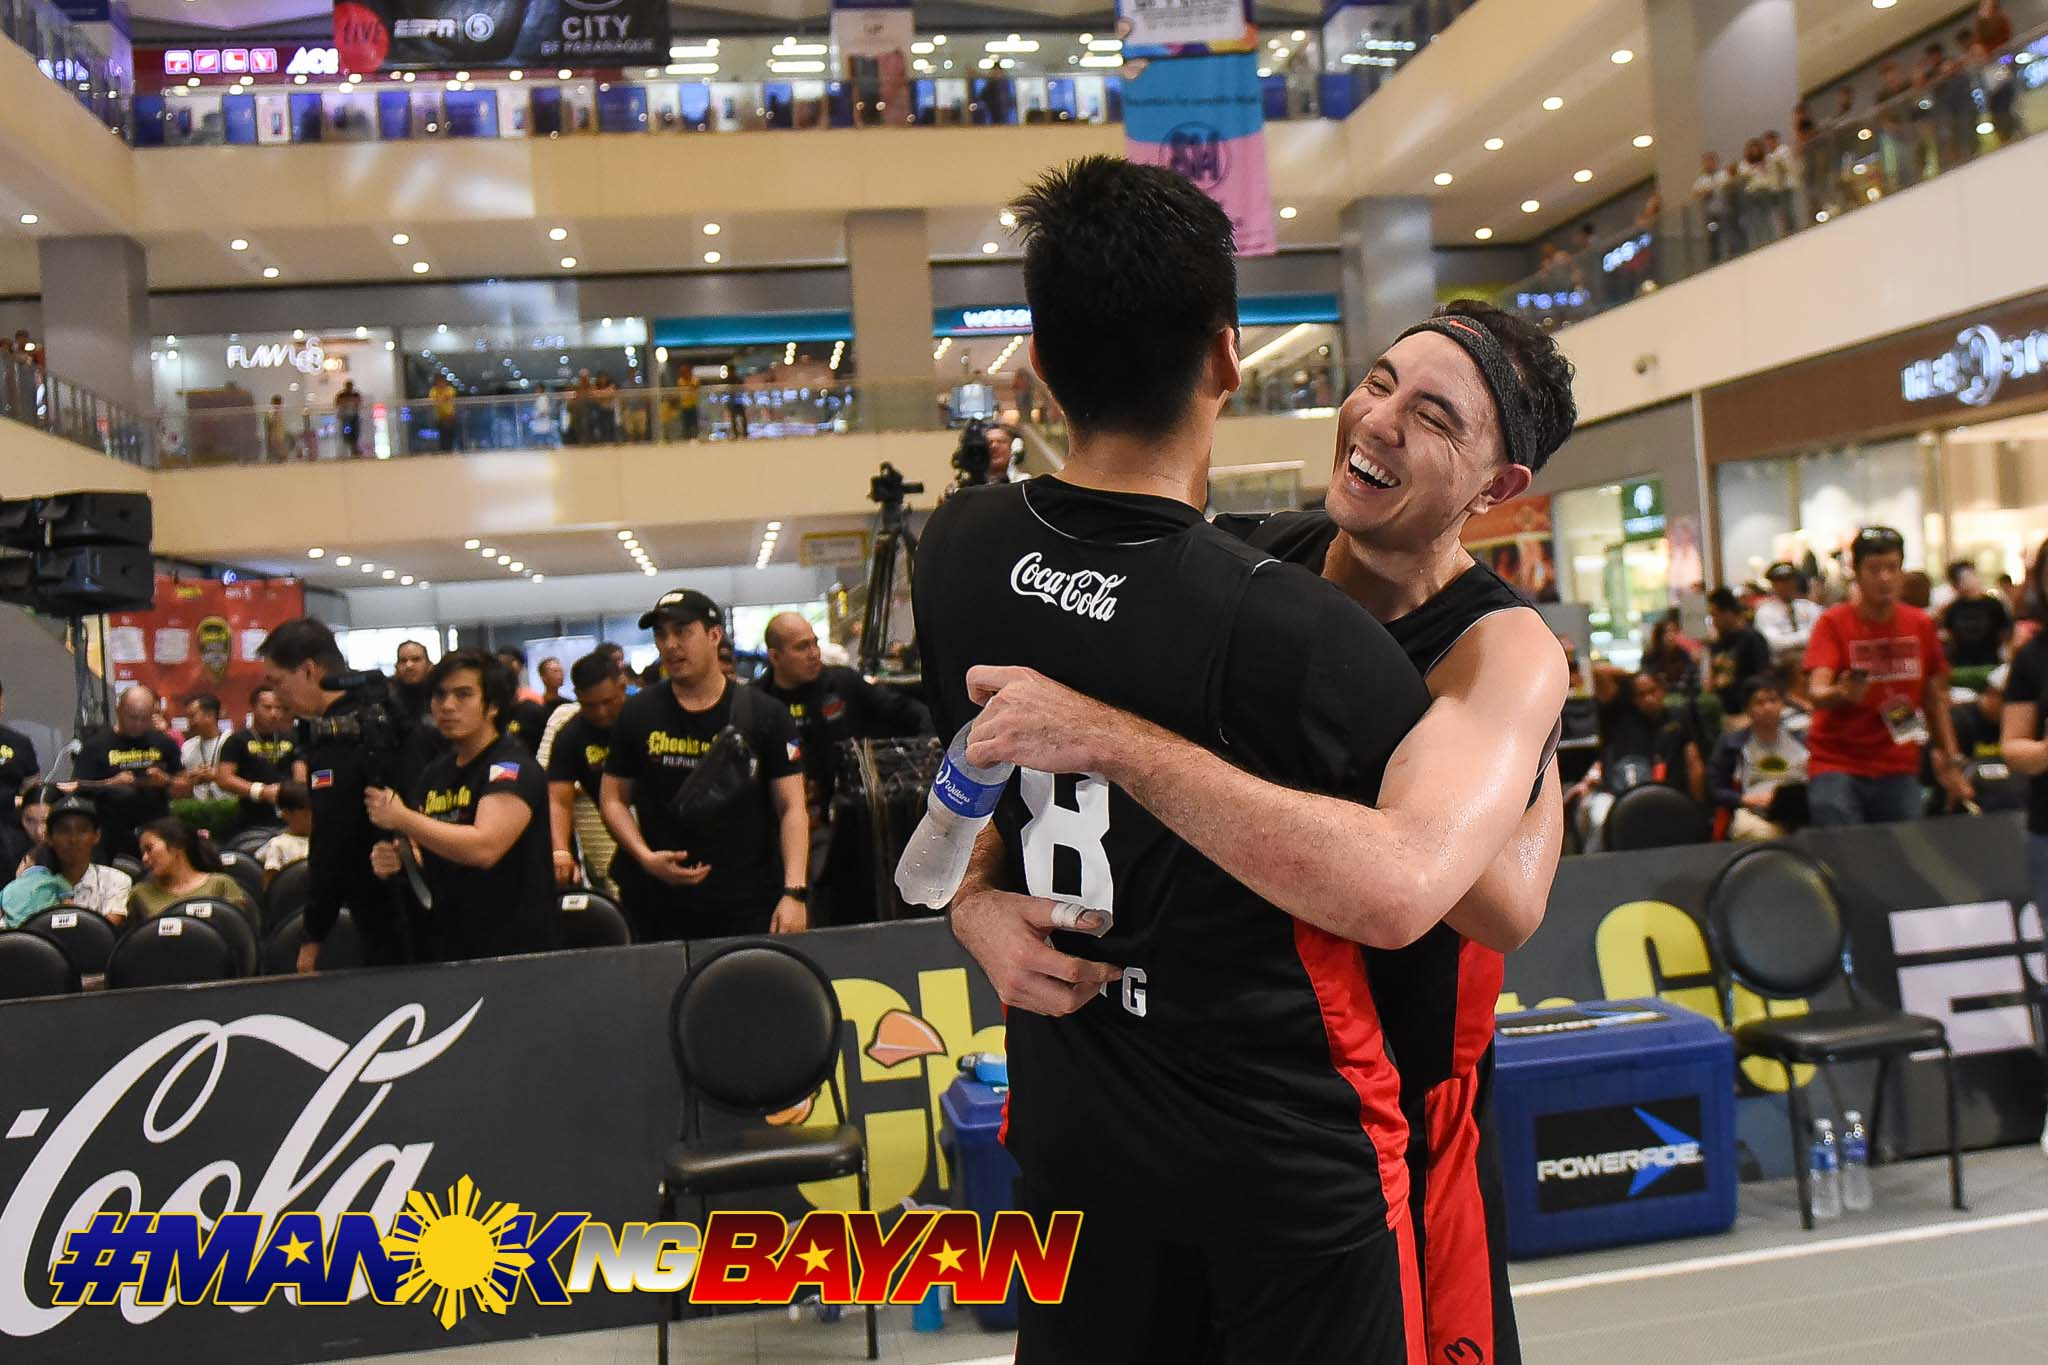 Tiebreaker Times Equalivet-Pasig gets payback in Leg 4, ends Balanga dominance 3x3 Basketball Chooks-to-Go Pilipinas 3x3 News  Santi Santillan Leo De Vera Karl Dehesa JR Alabanza Joshua Munzon Equalivet-Pasig Kings Dylan Ababou Chris De Chavez Alvin Pasaol 2019 Chooks-to-Go Pilipinas 3x3 Season 2019 Chooks-to-Go Pilipinas 3x3 Magiting Cup